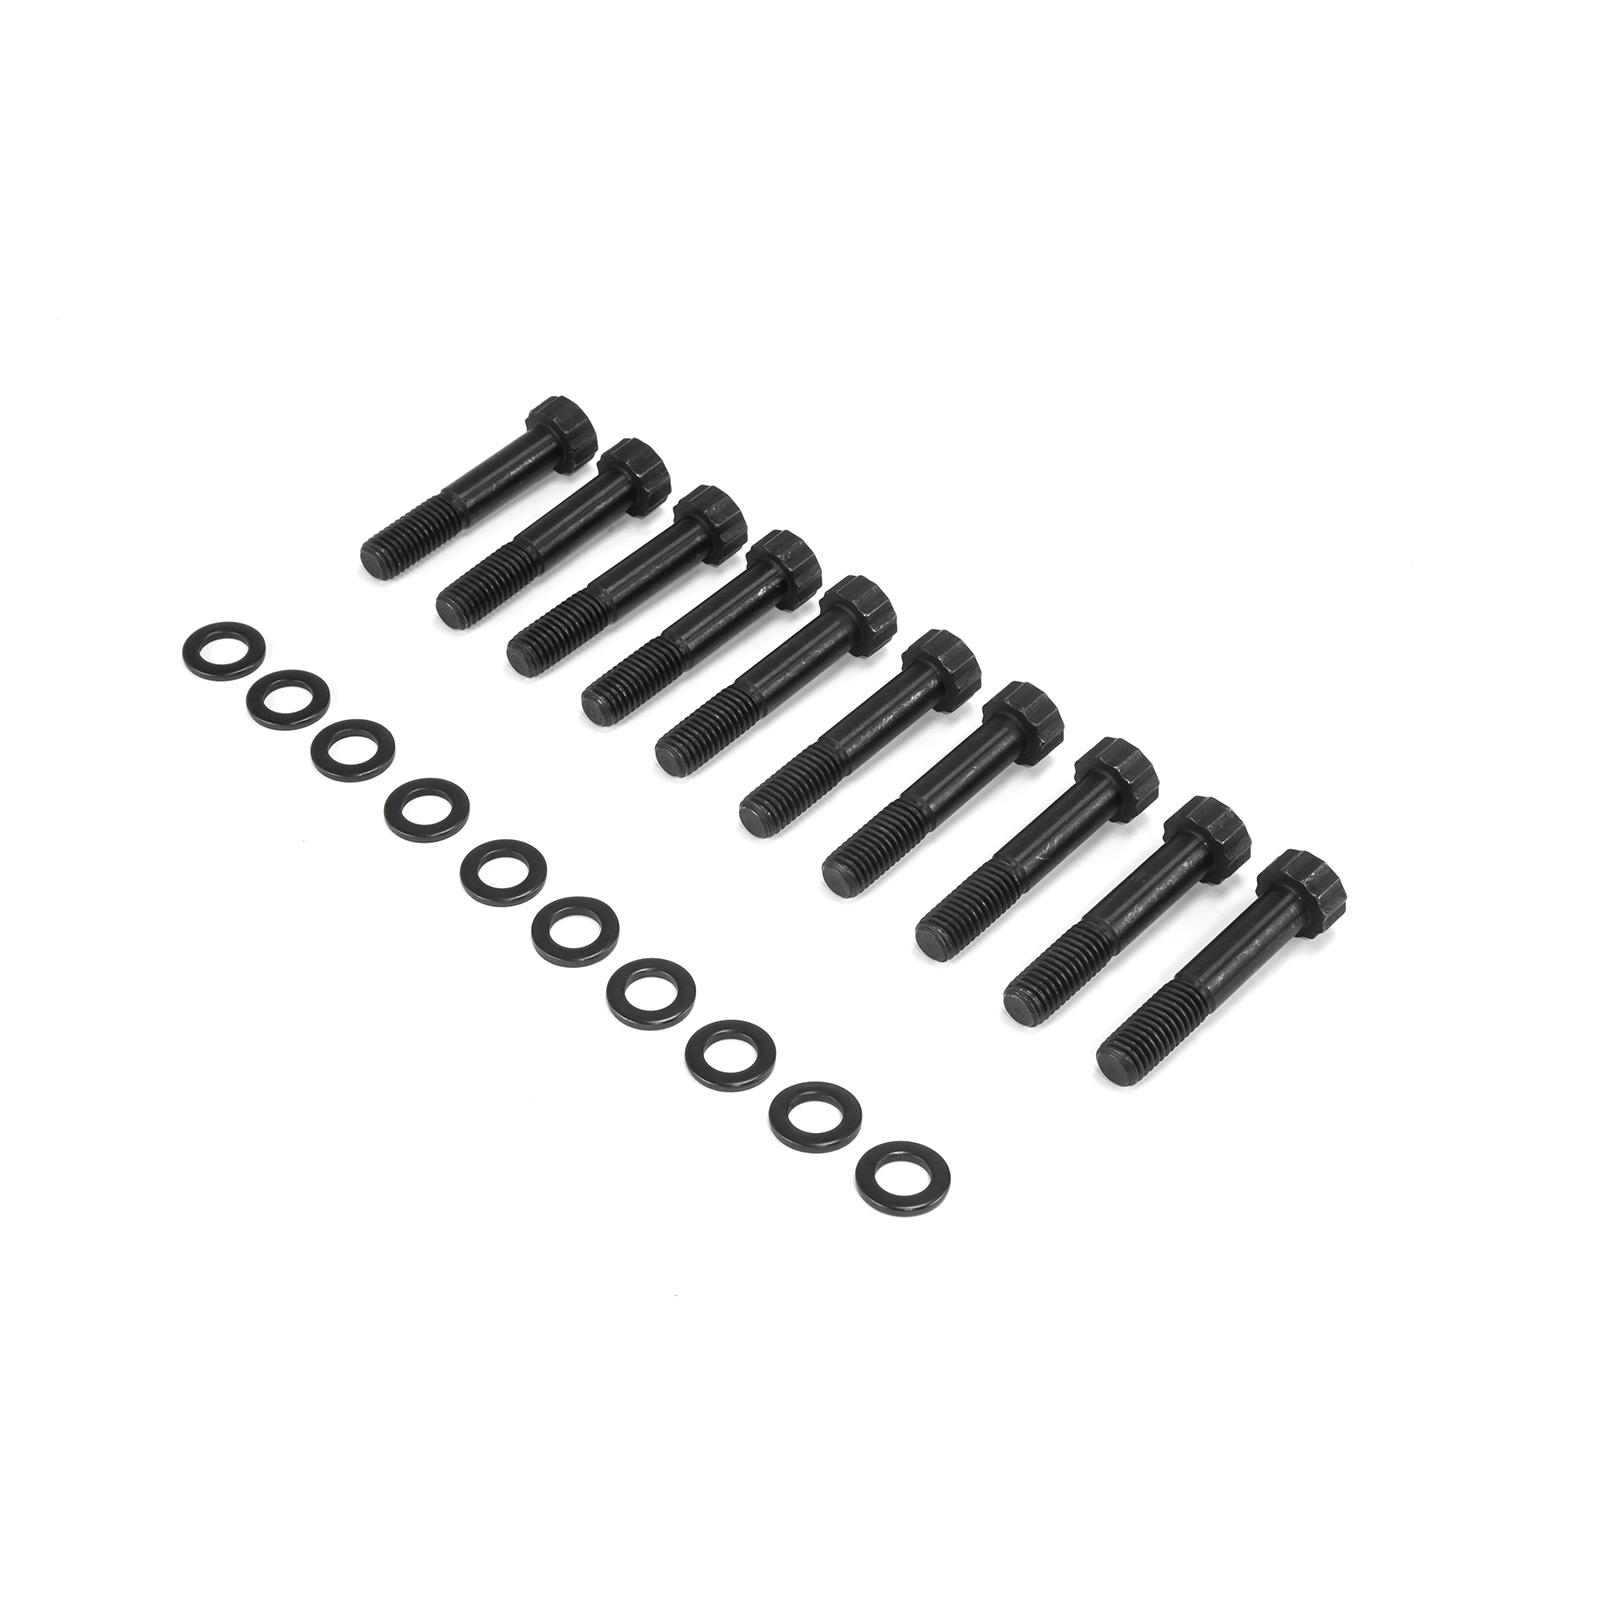 Engines Amp Components Gt Engine Blocks Amp Accessories